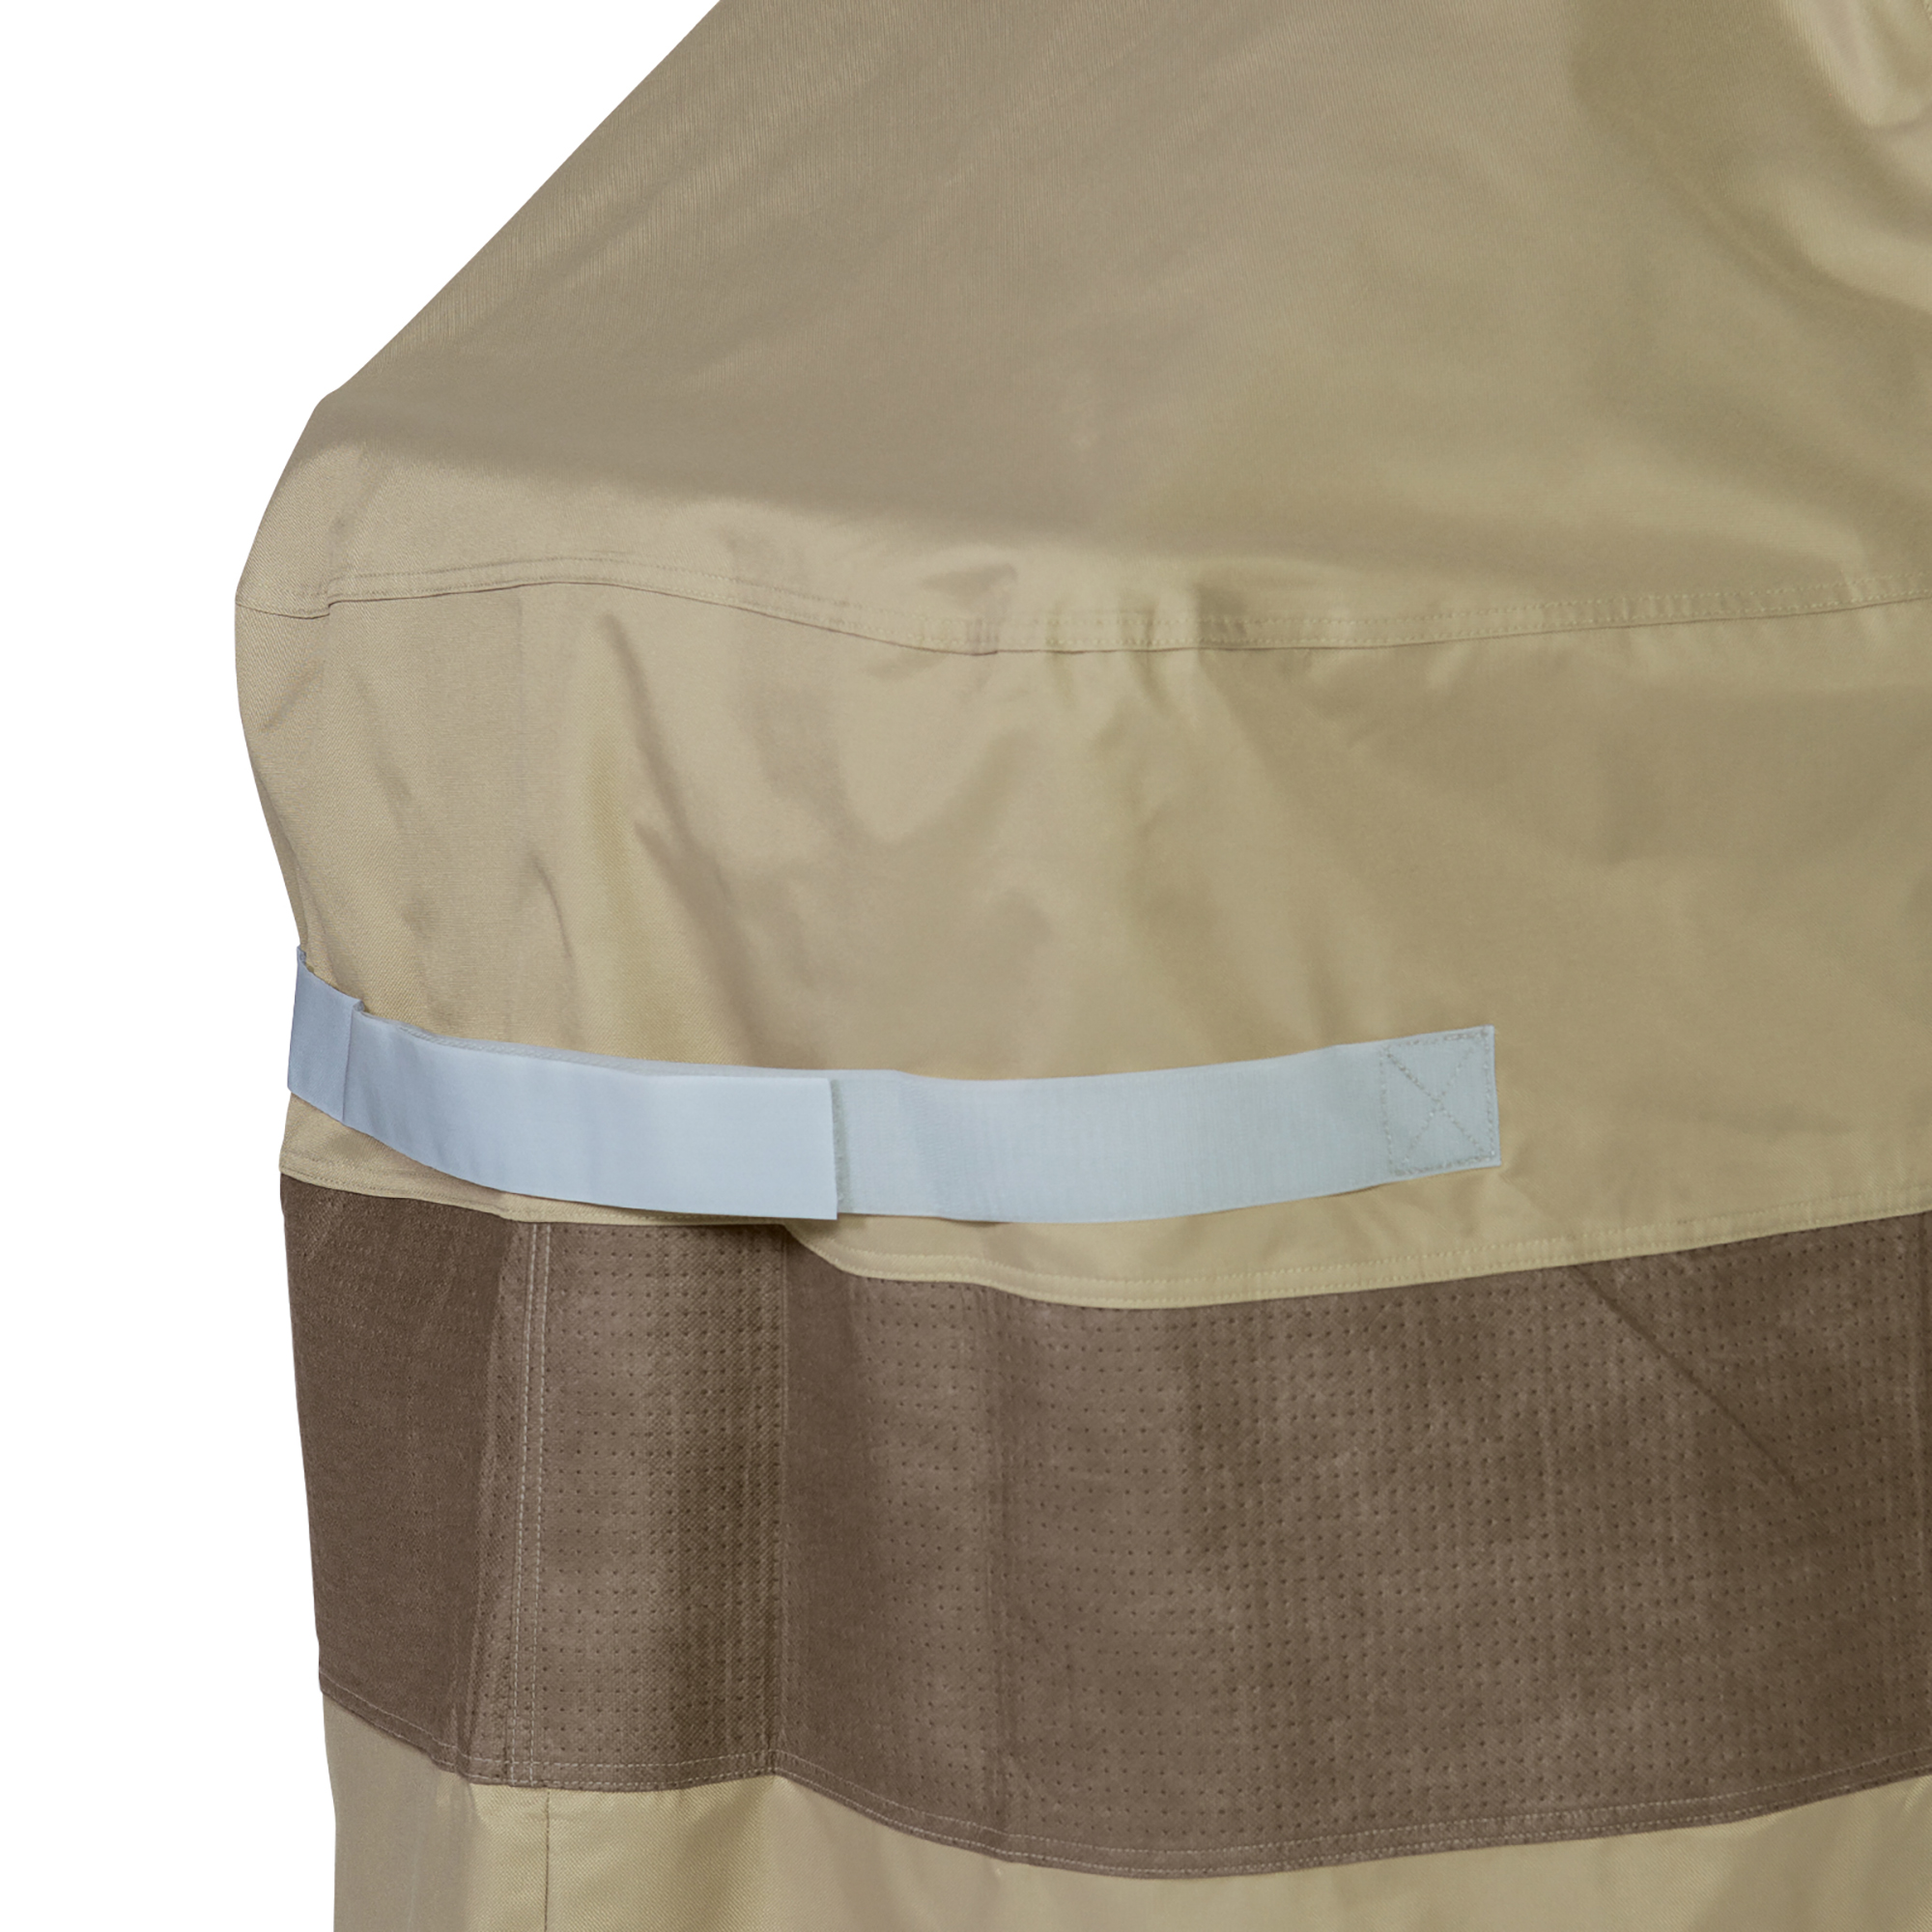 Duck Covers Elegant 67 in. W Grill Cover - image 1 de 2